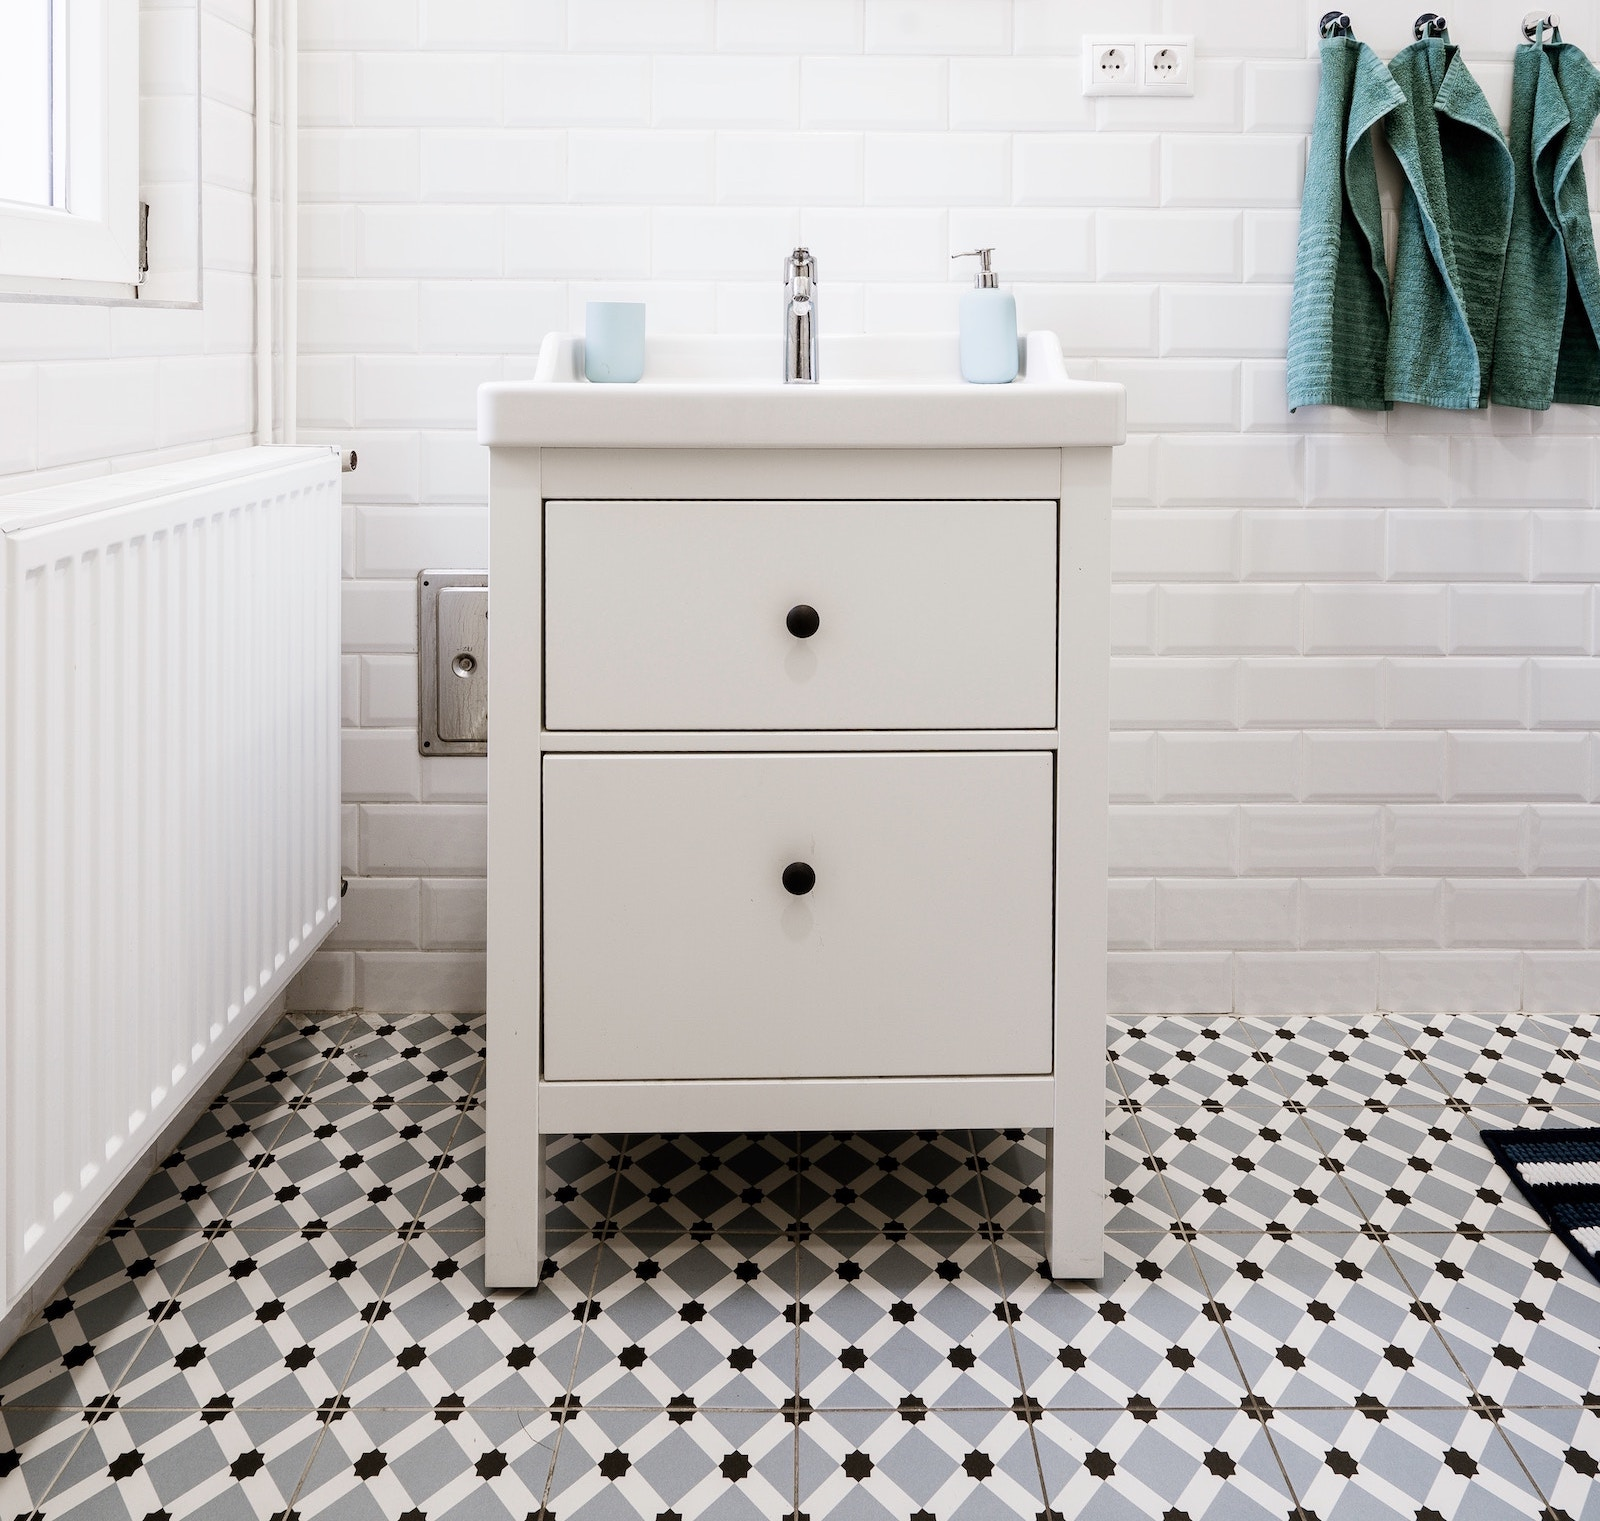 How much bathroom tile stickers cost